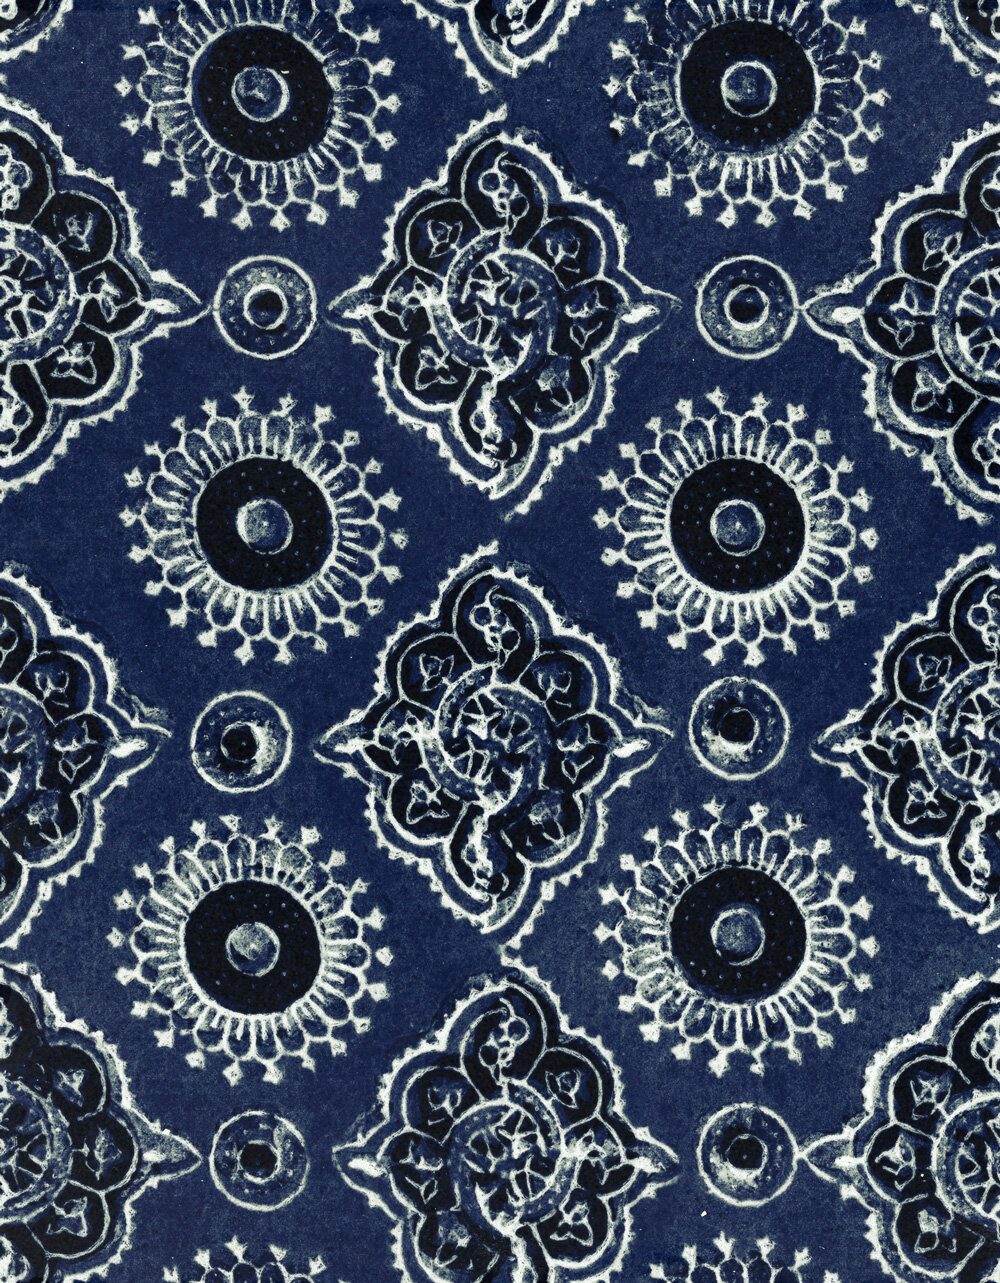 Ajrak Fabric - Blue / White / Black - by Mind the Gap